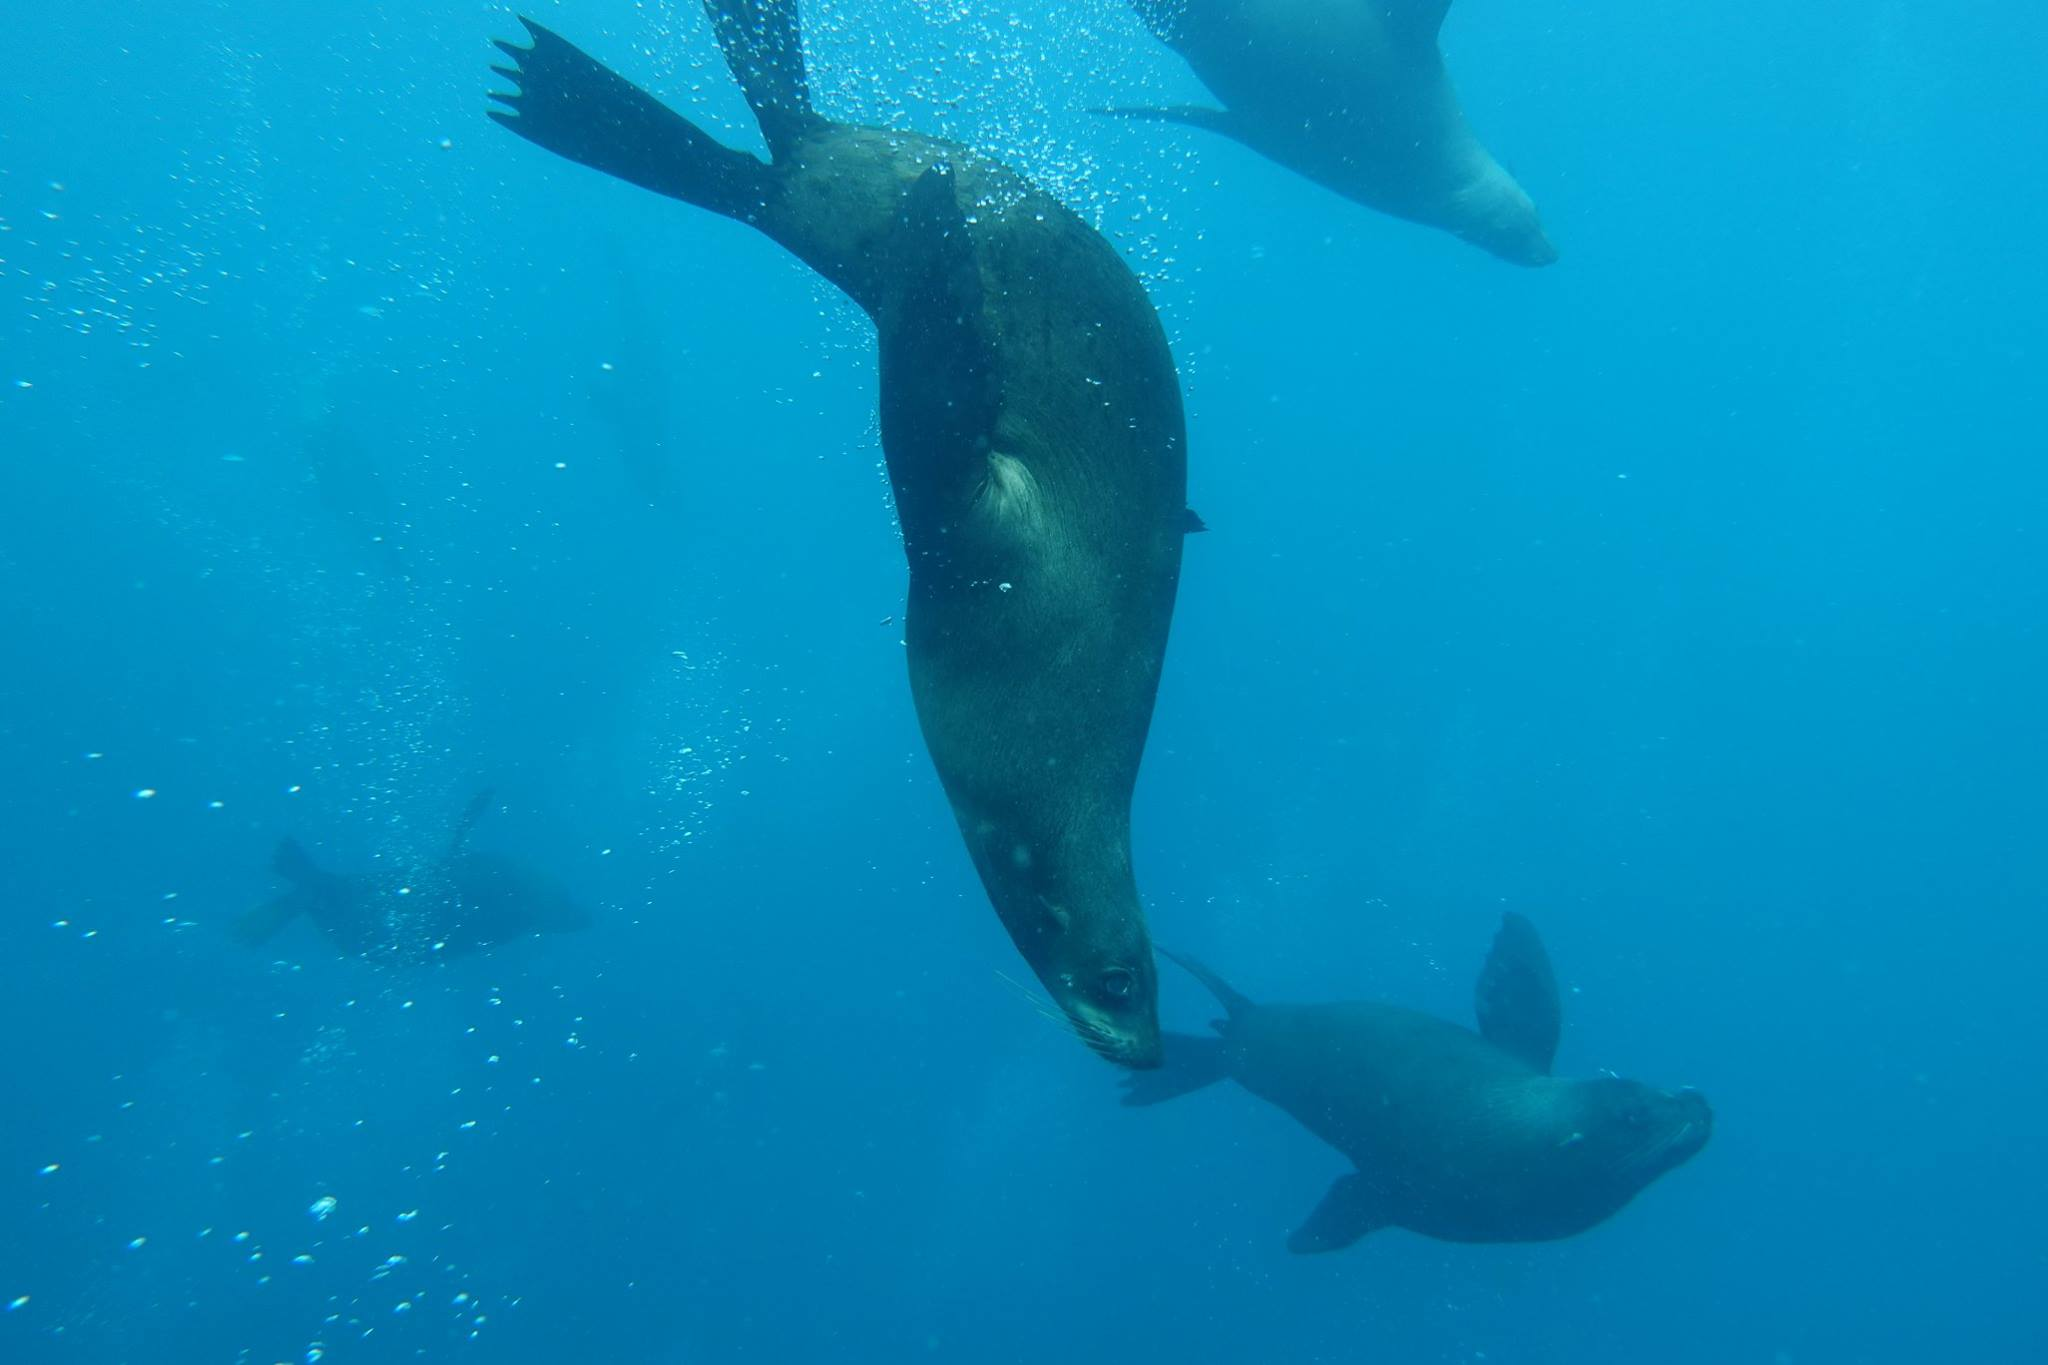 How Does A Seal Dive So Well?